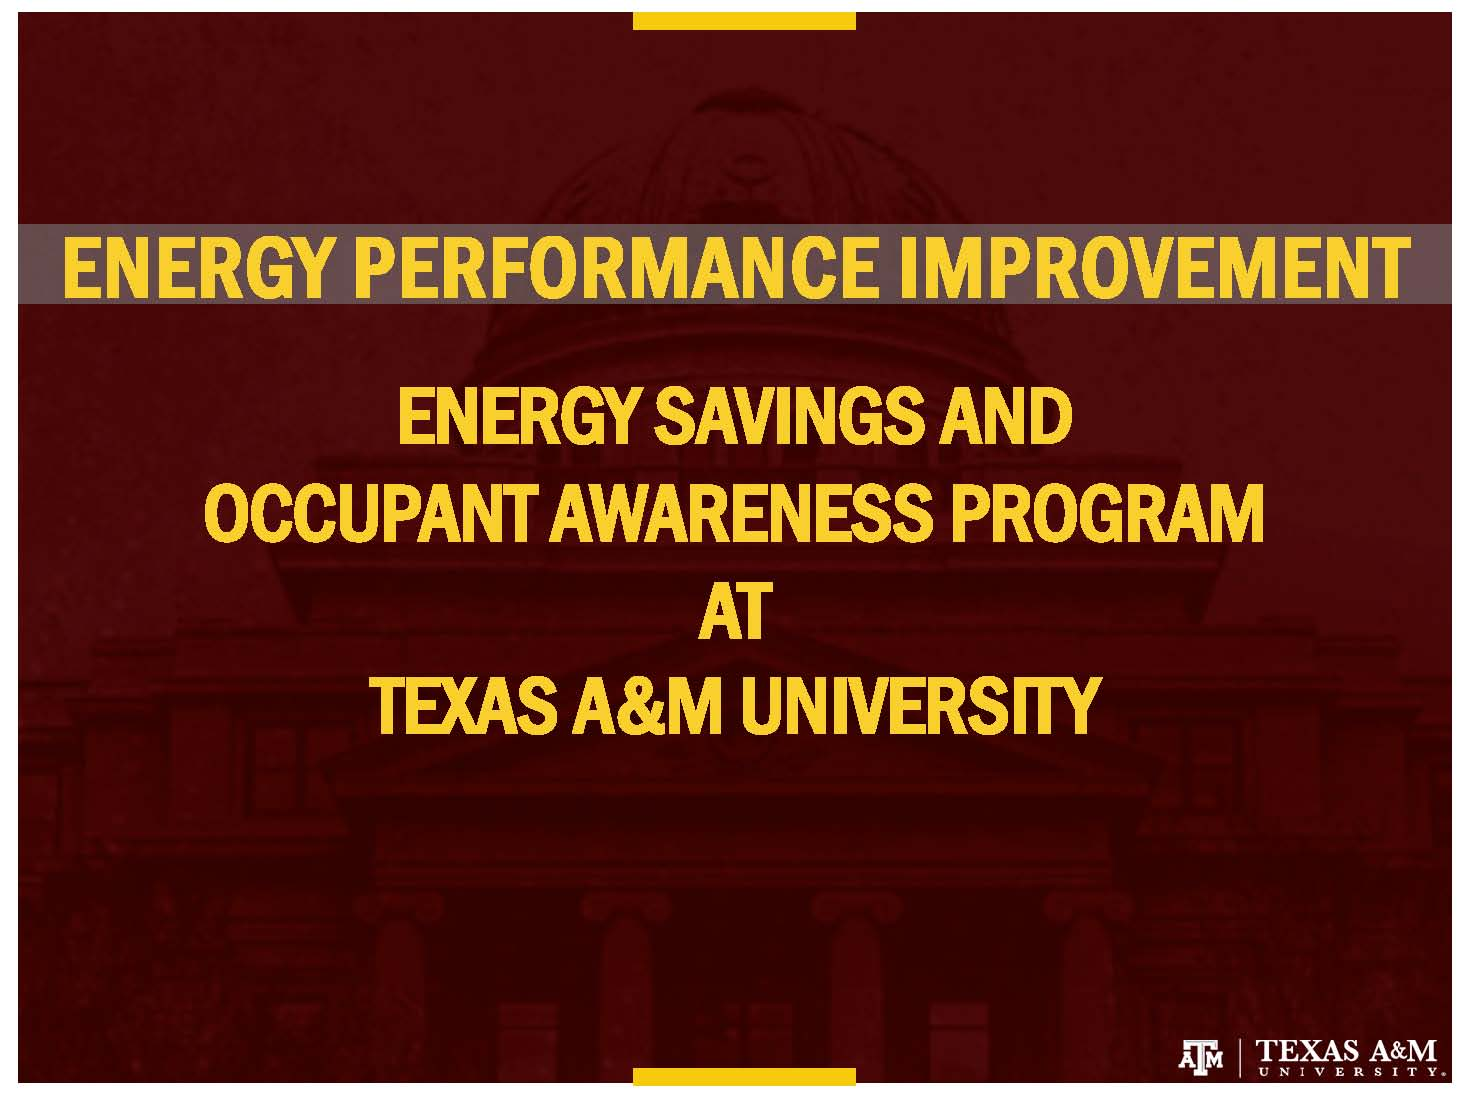 Energy Performance Program Overview